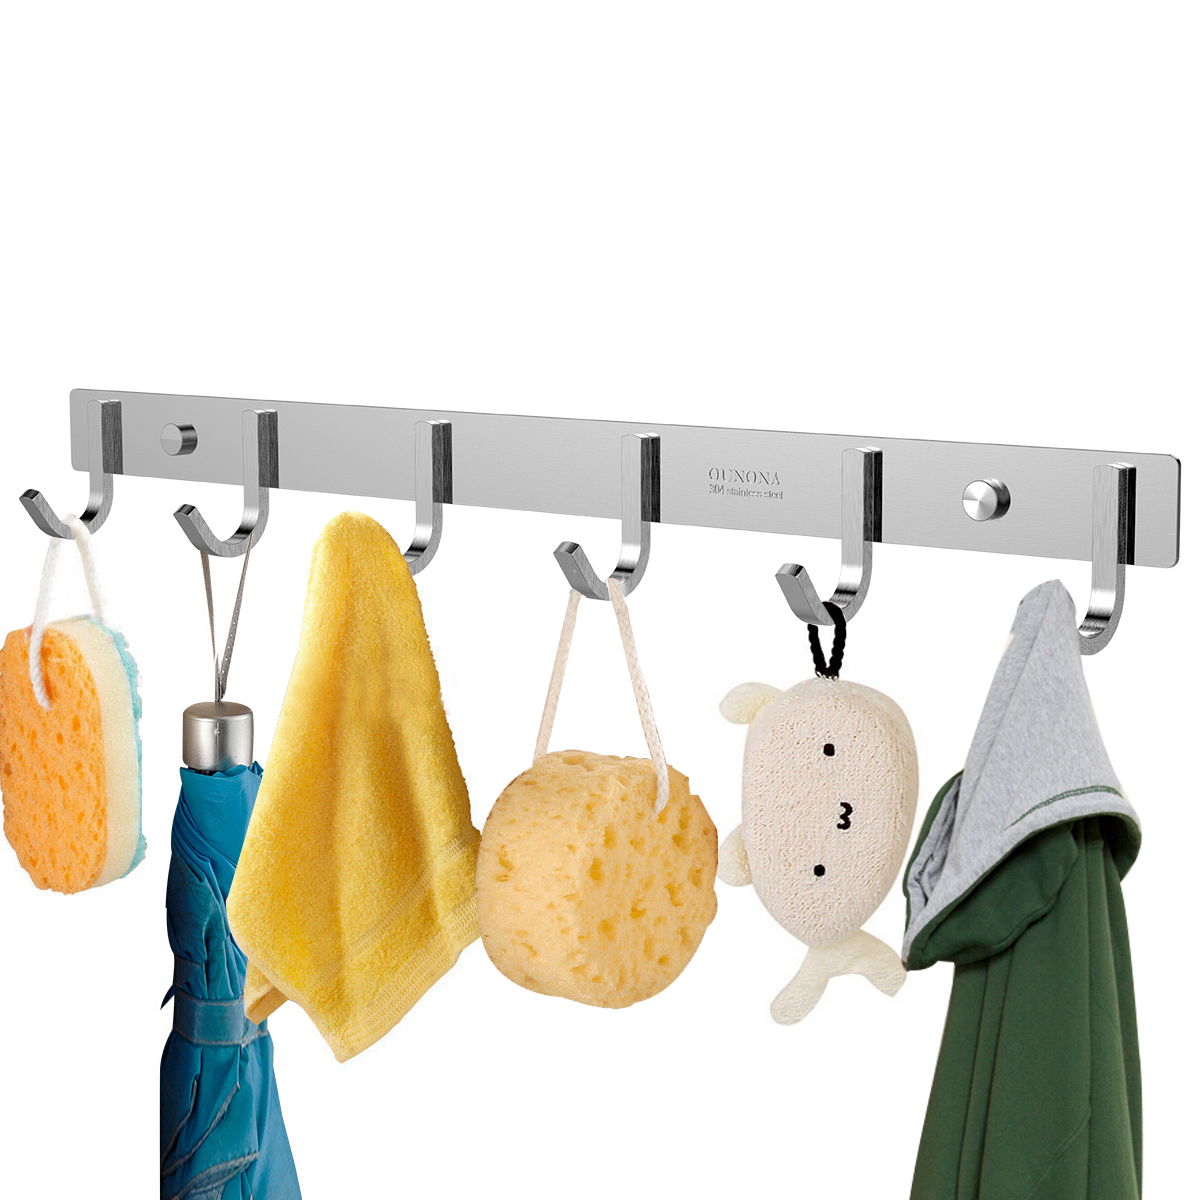 Ambitious Sturdy Hook Stainless Steel 304 Hook Rail Coat Rack With 6 Hooks Home Storage & Organization For Bedroom Superior Performance Home Improvement Robe Hooks